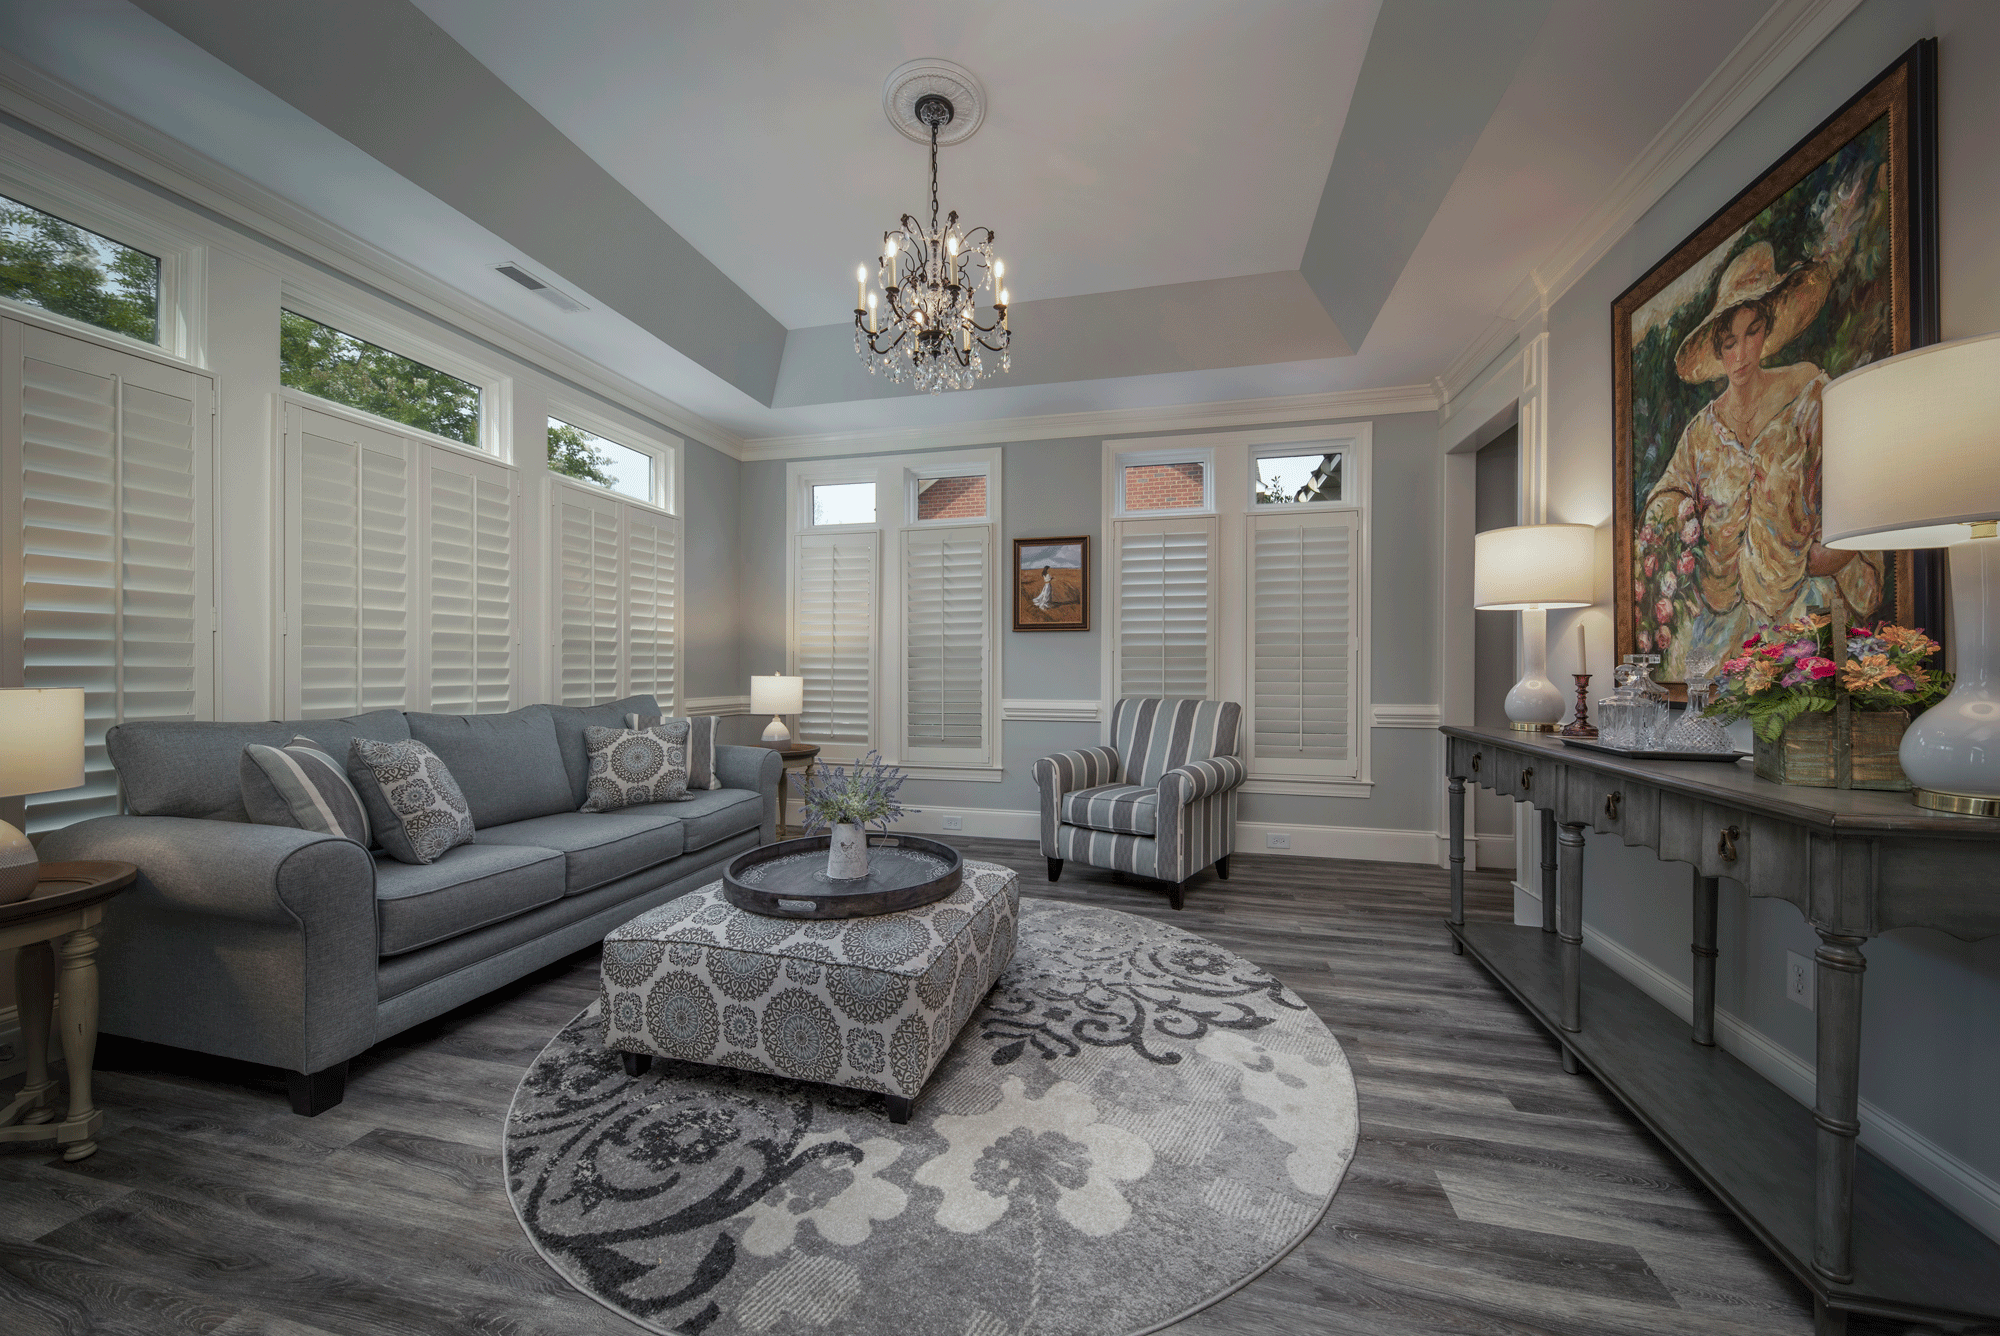 interior design for living room with flooring, furniture, seating, lighting, wall artwork, and decor